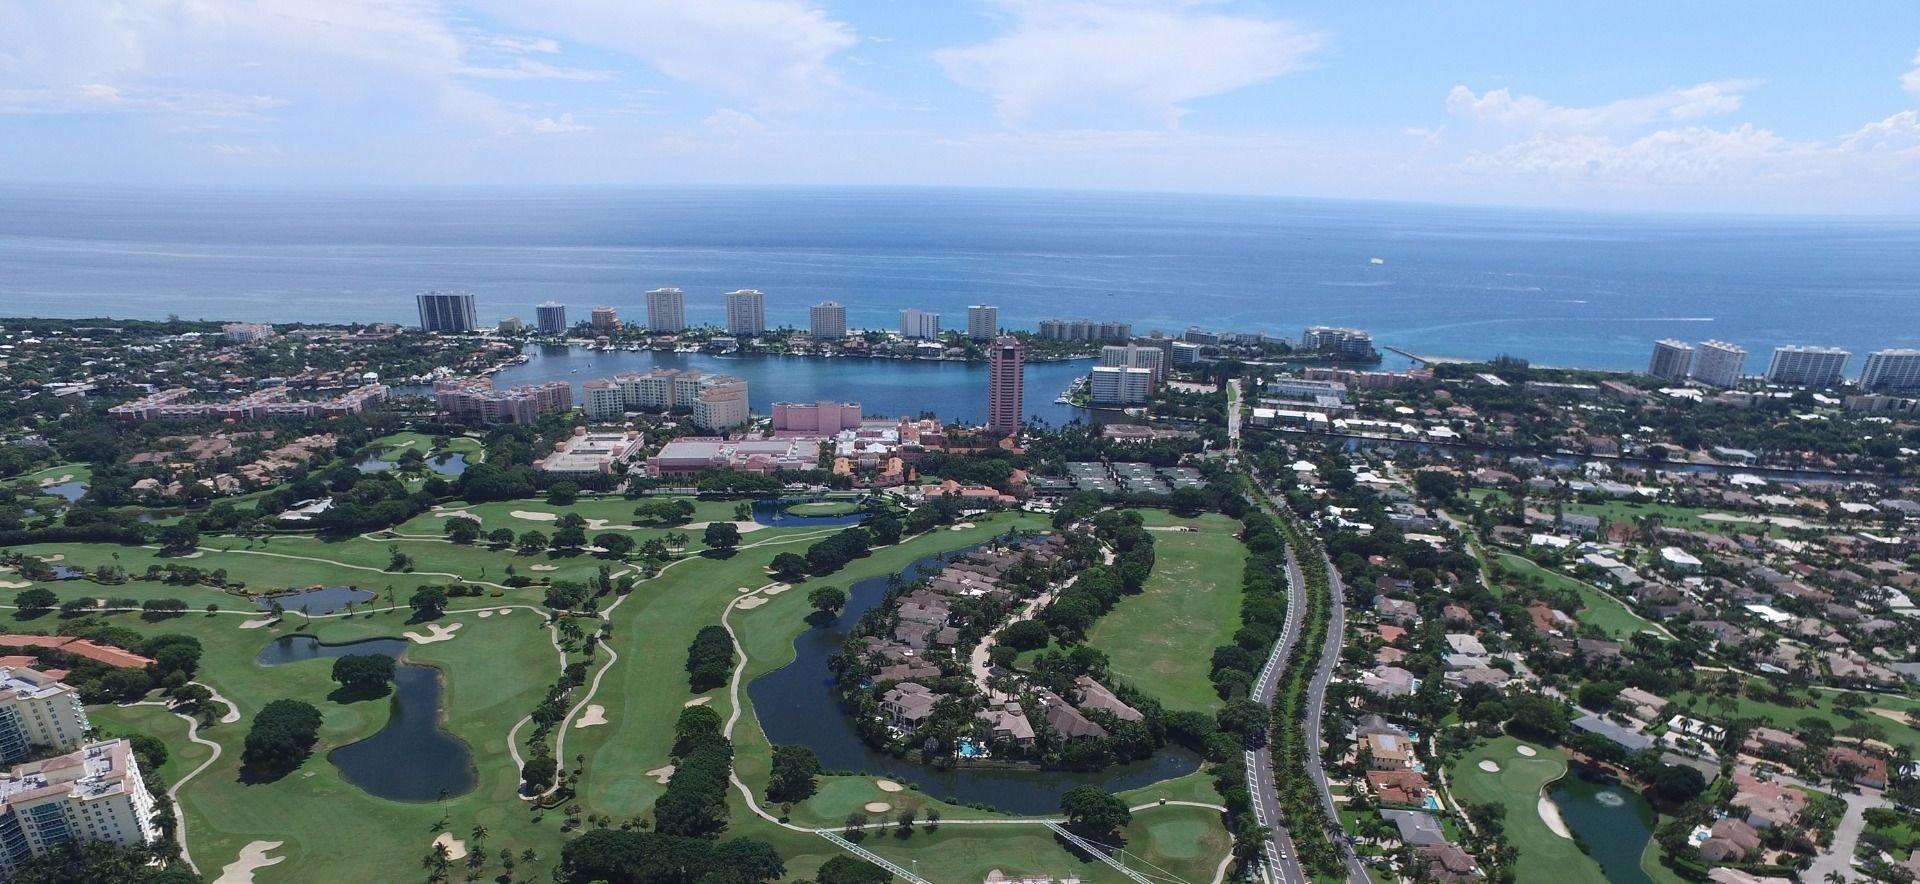 Aerial view of golf course and skyline